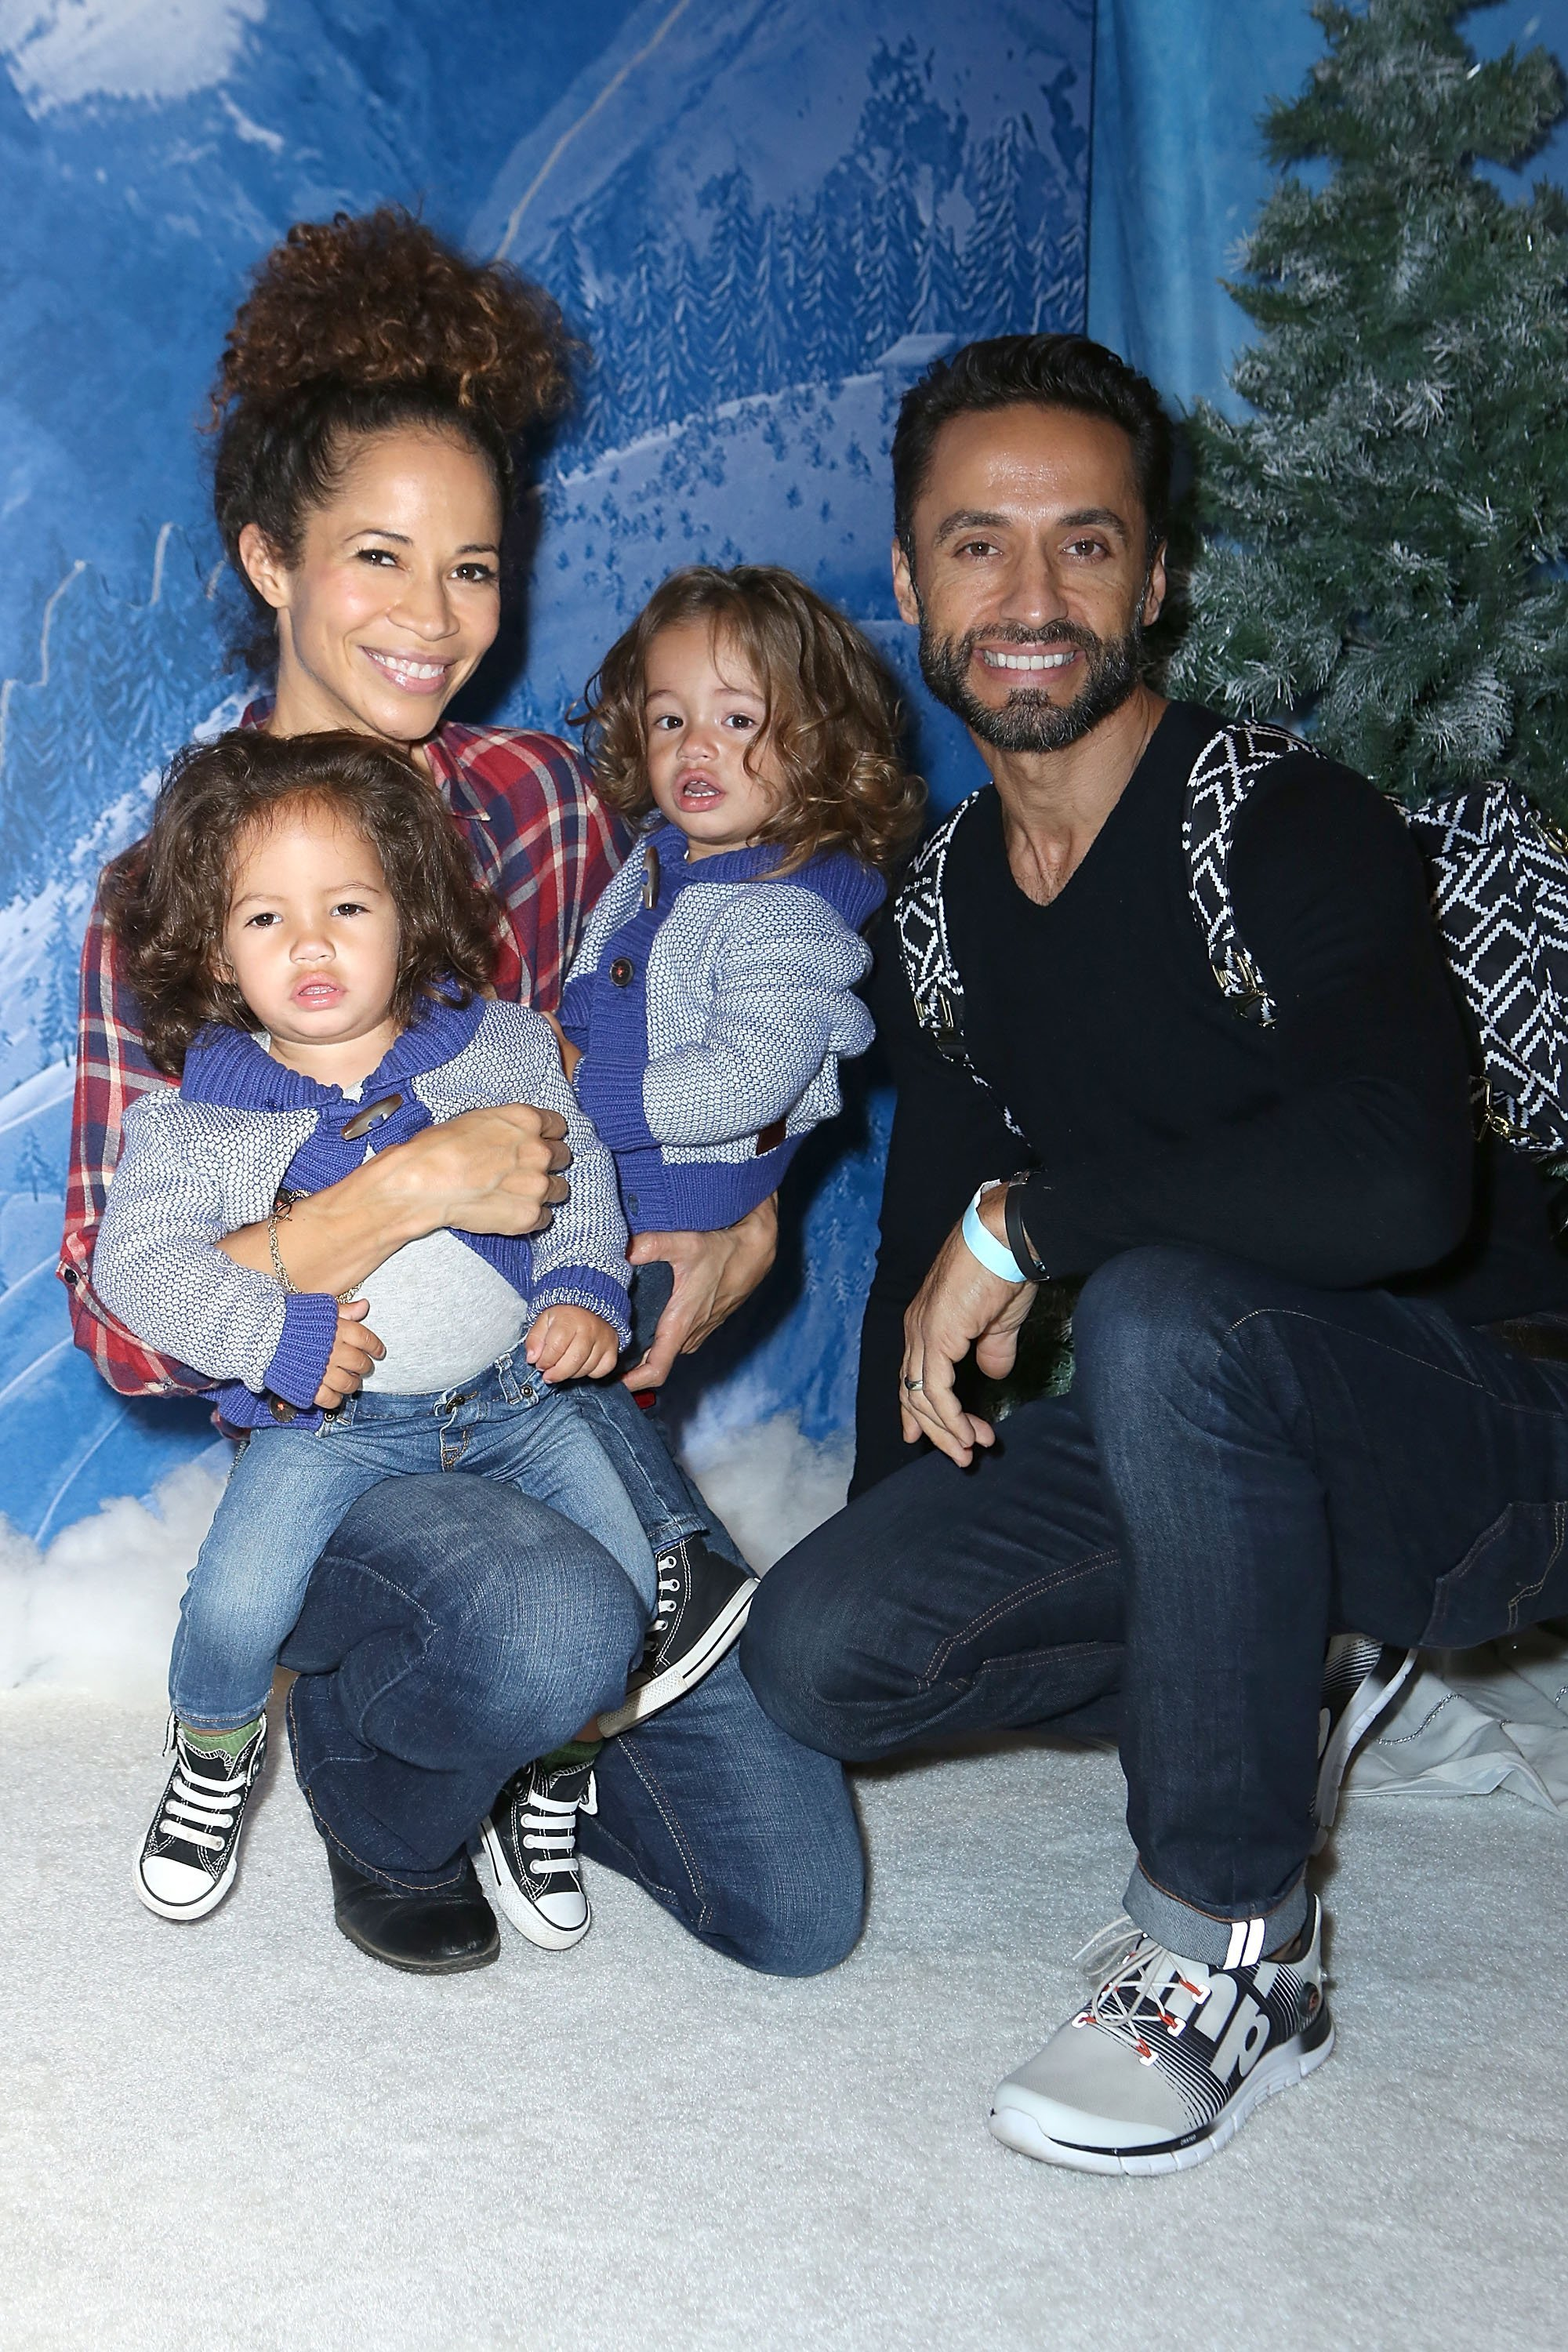 Sherri Saum, John, Michael, and Kamar De Los Reyes attend Disney On Ice Presents Frozen Los Angeles Premiere at Staples Center on December 10, 2015, in Los Angeles, California. | Source: Getty Images.